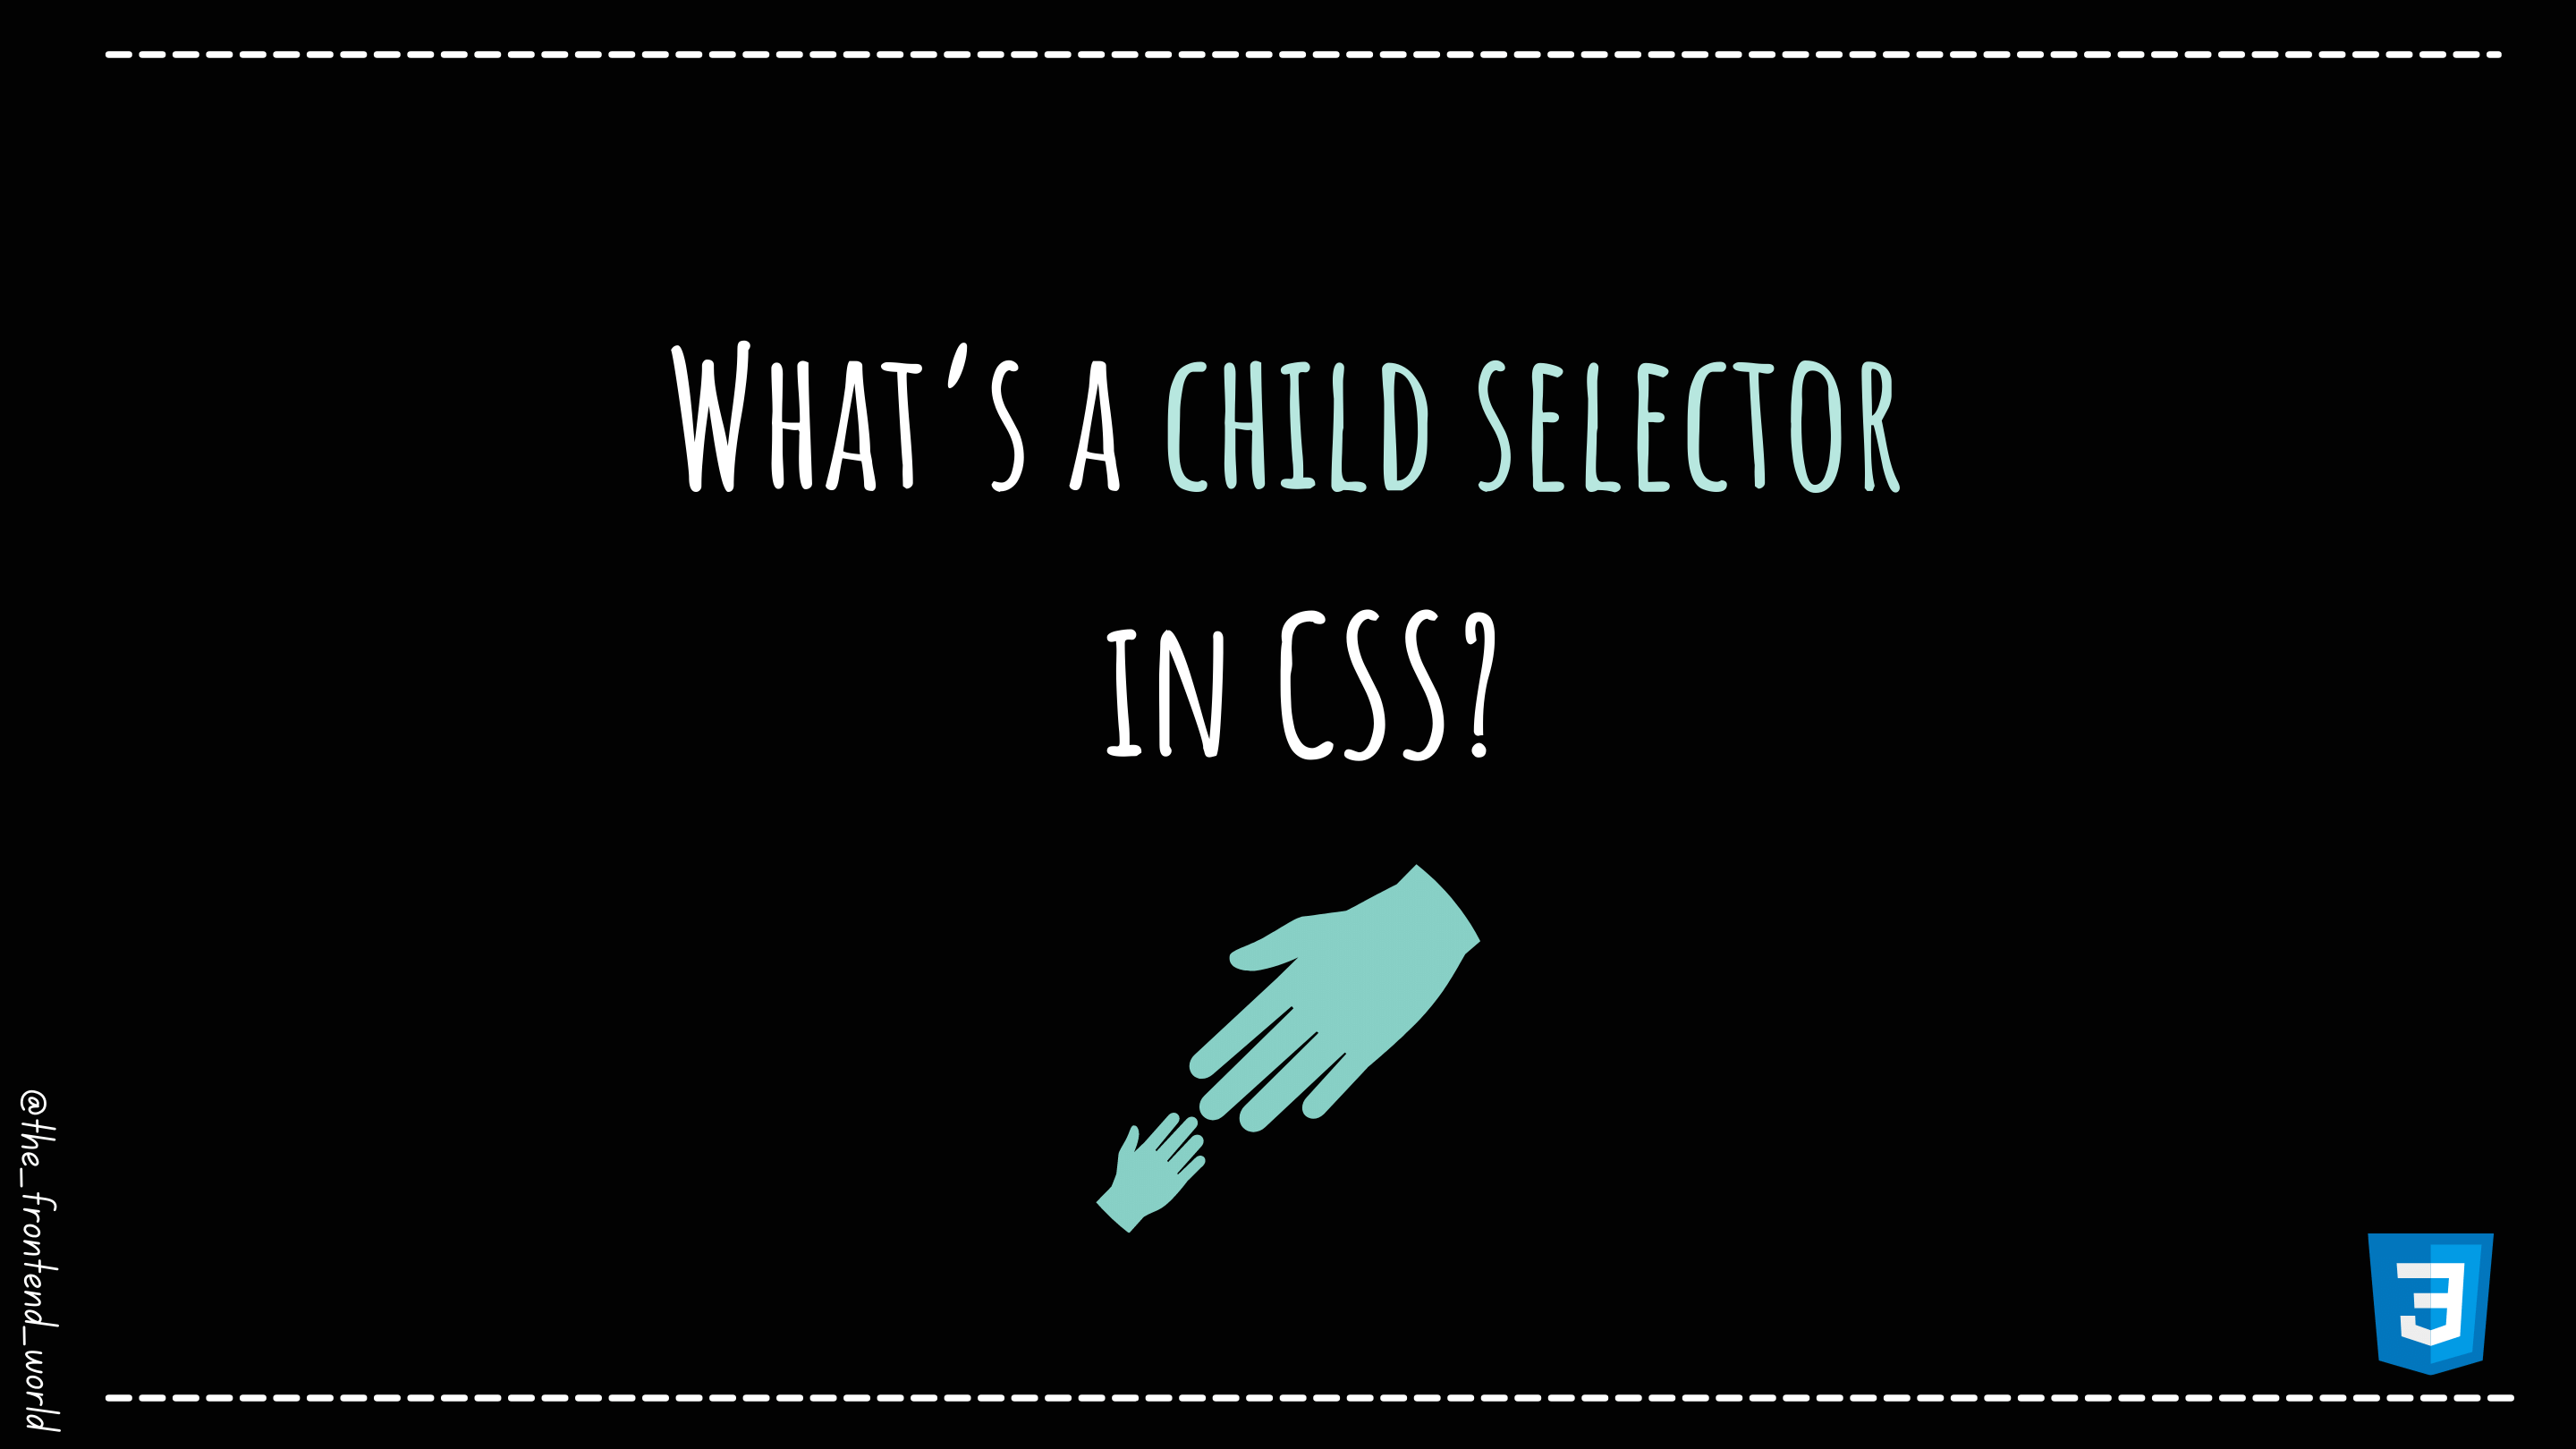 What's a child selector in CSS?